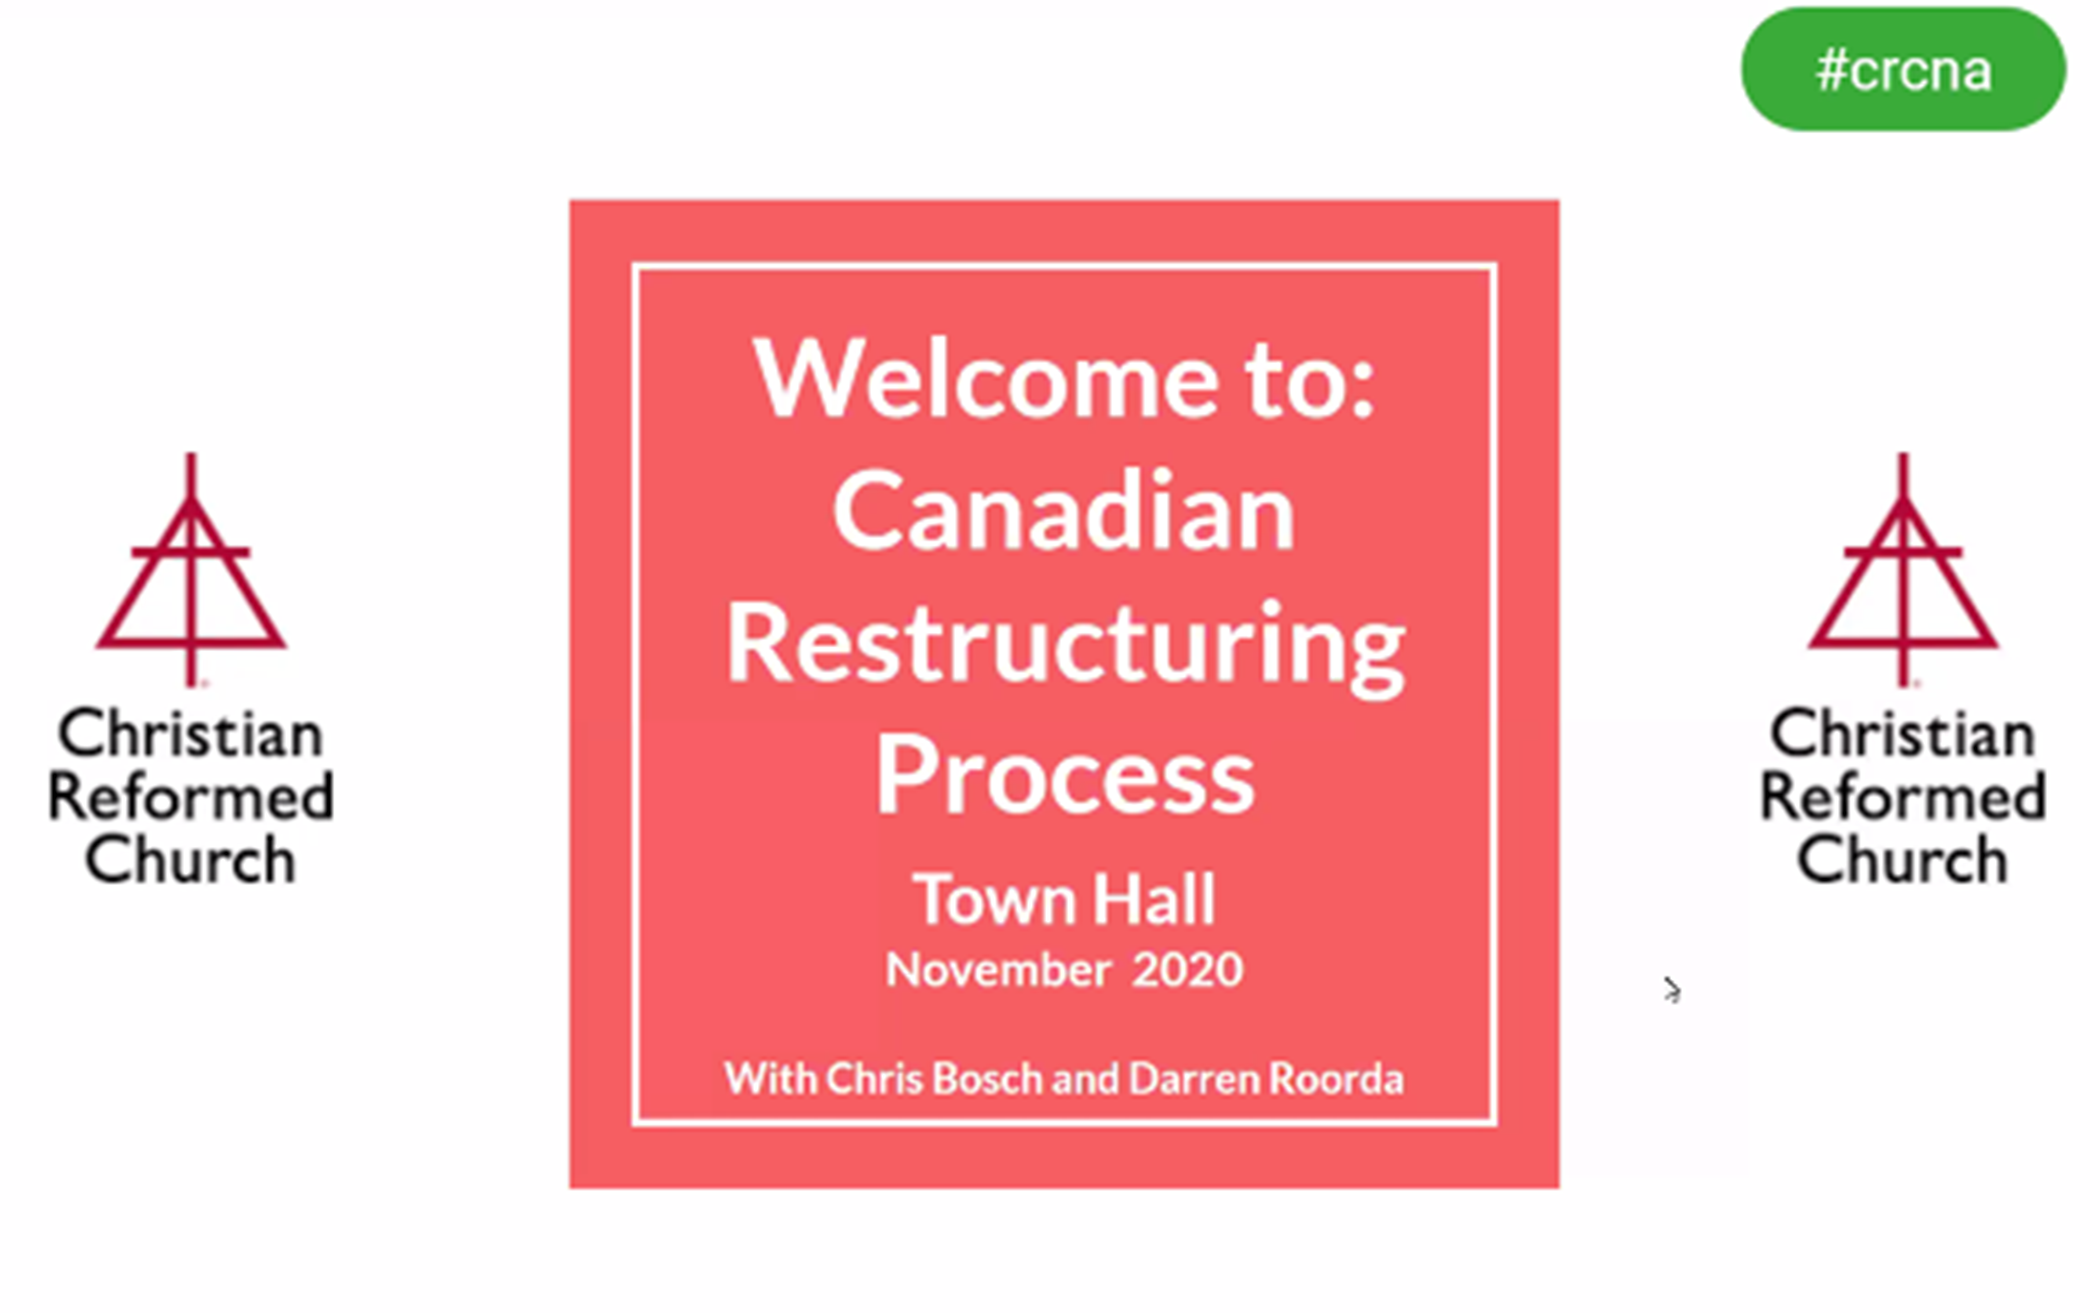 CRC in Canada Reviews Governance